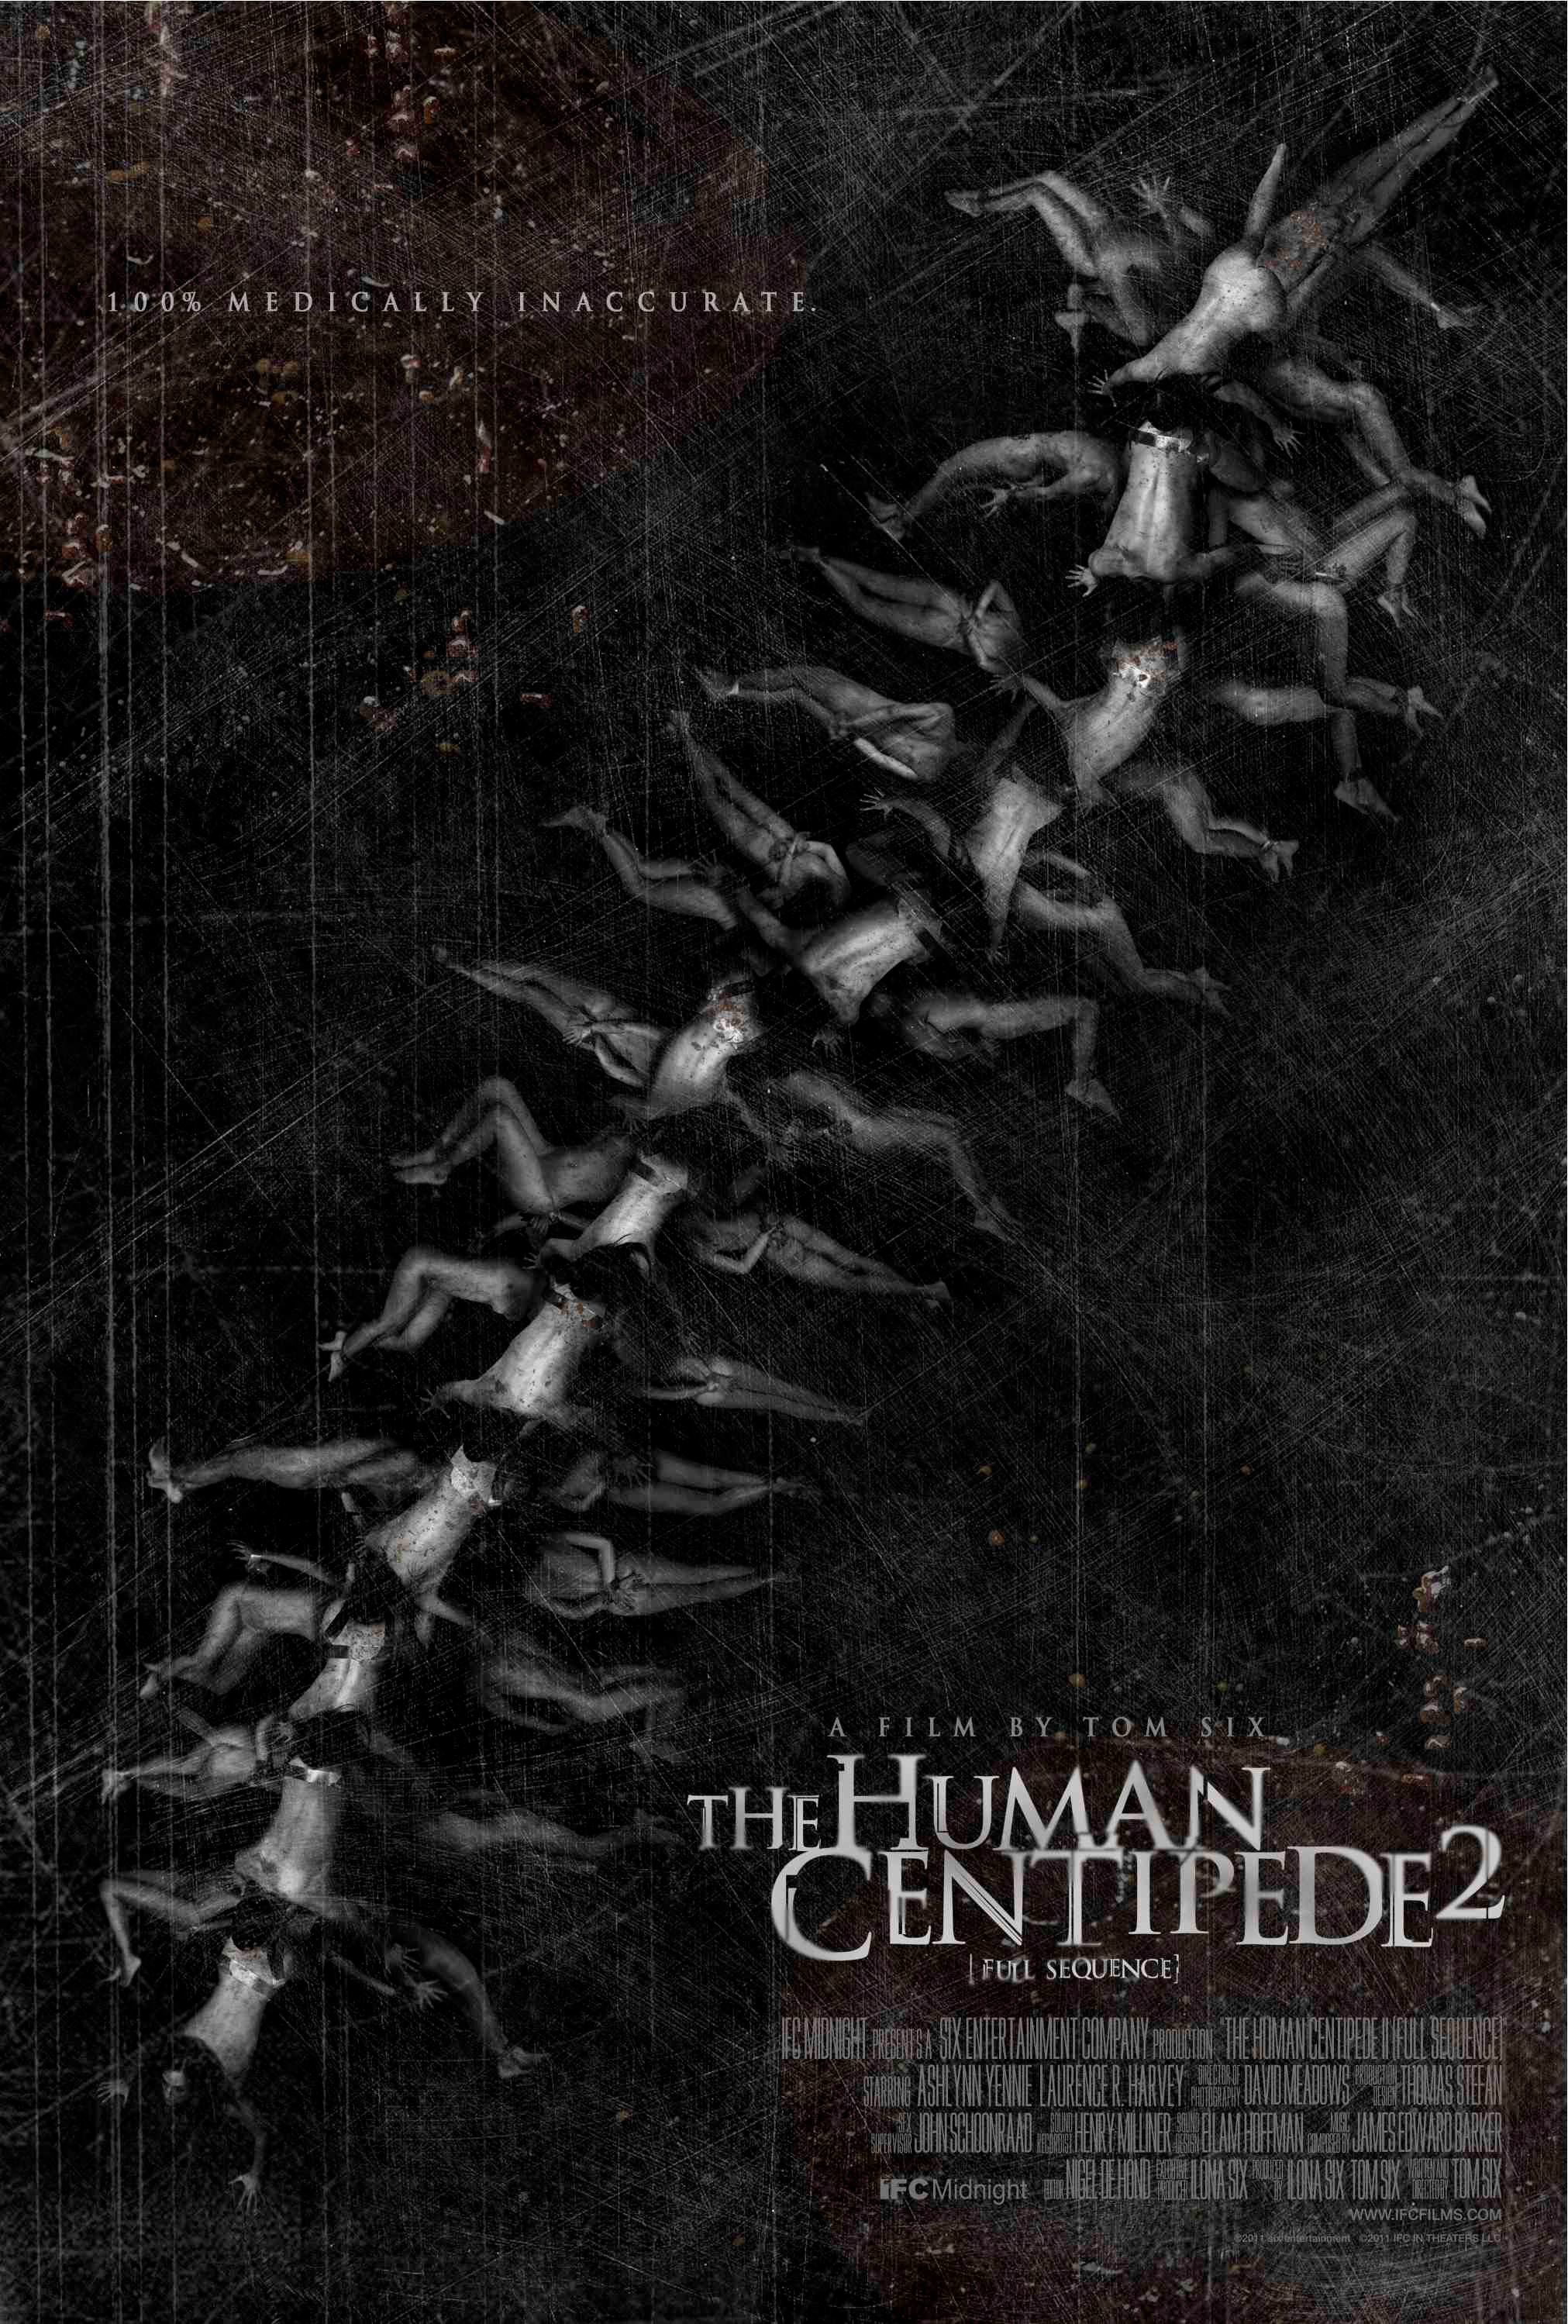 The human centipede 2 full sequence review collider related content pooptronica